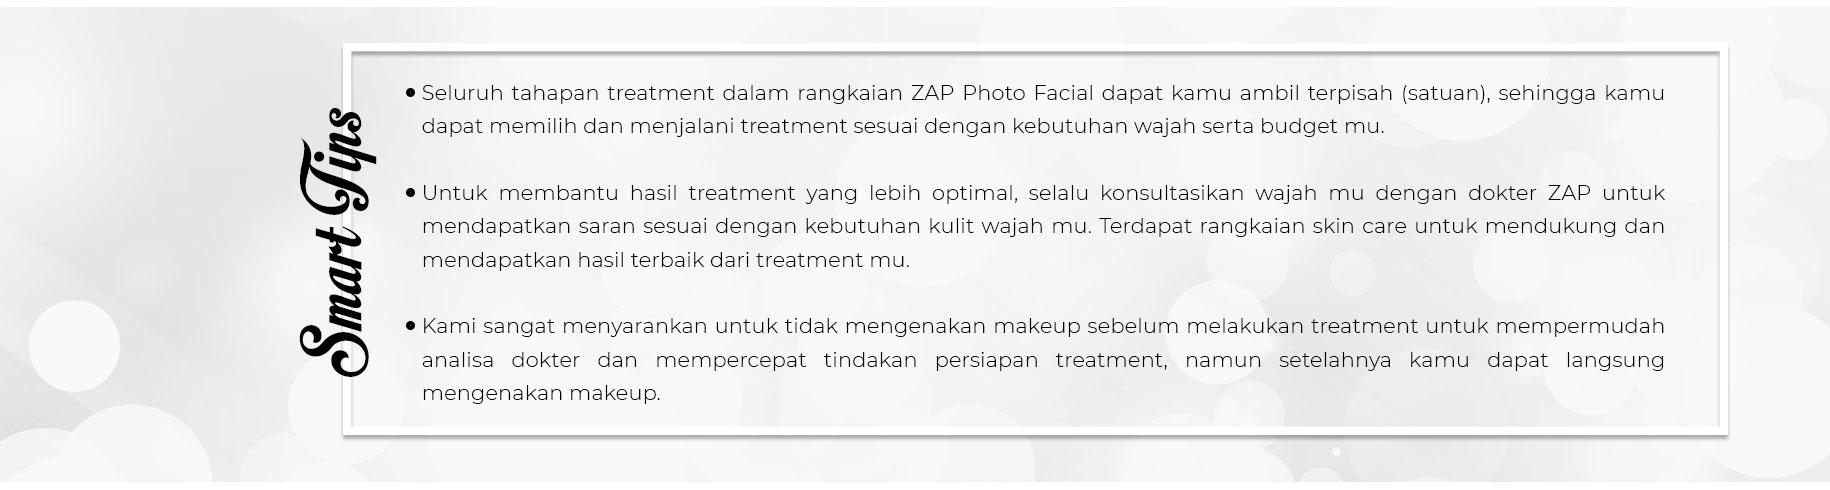 Tips Photo Facial